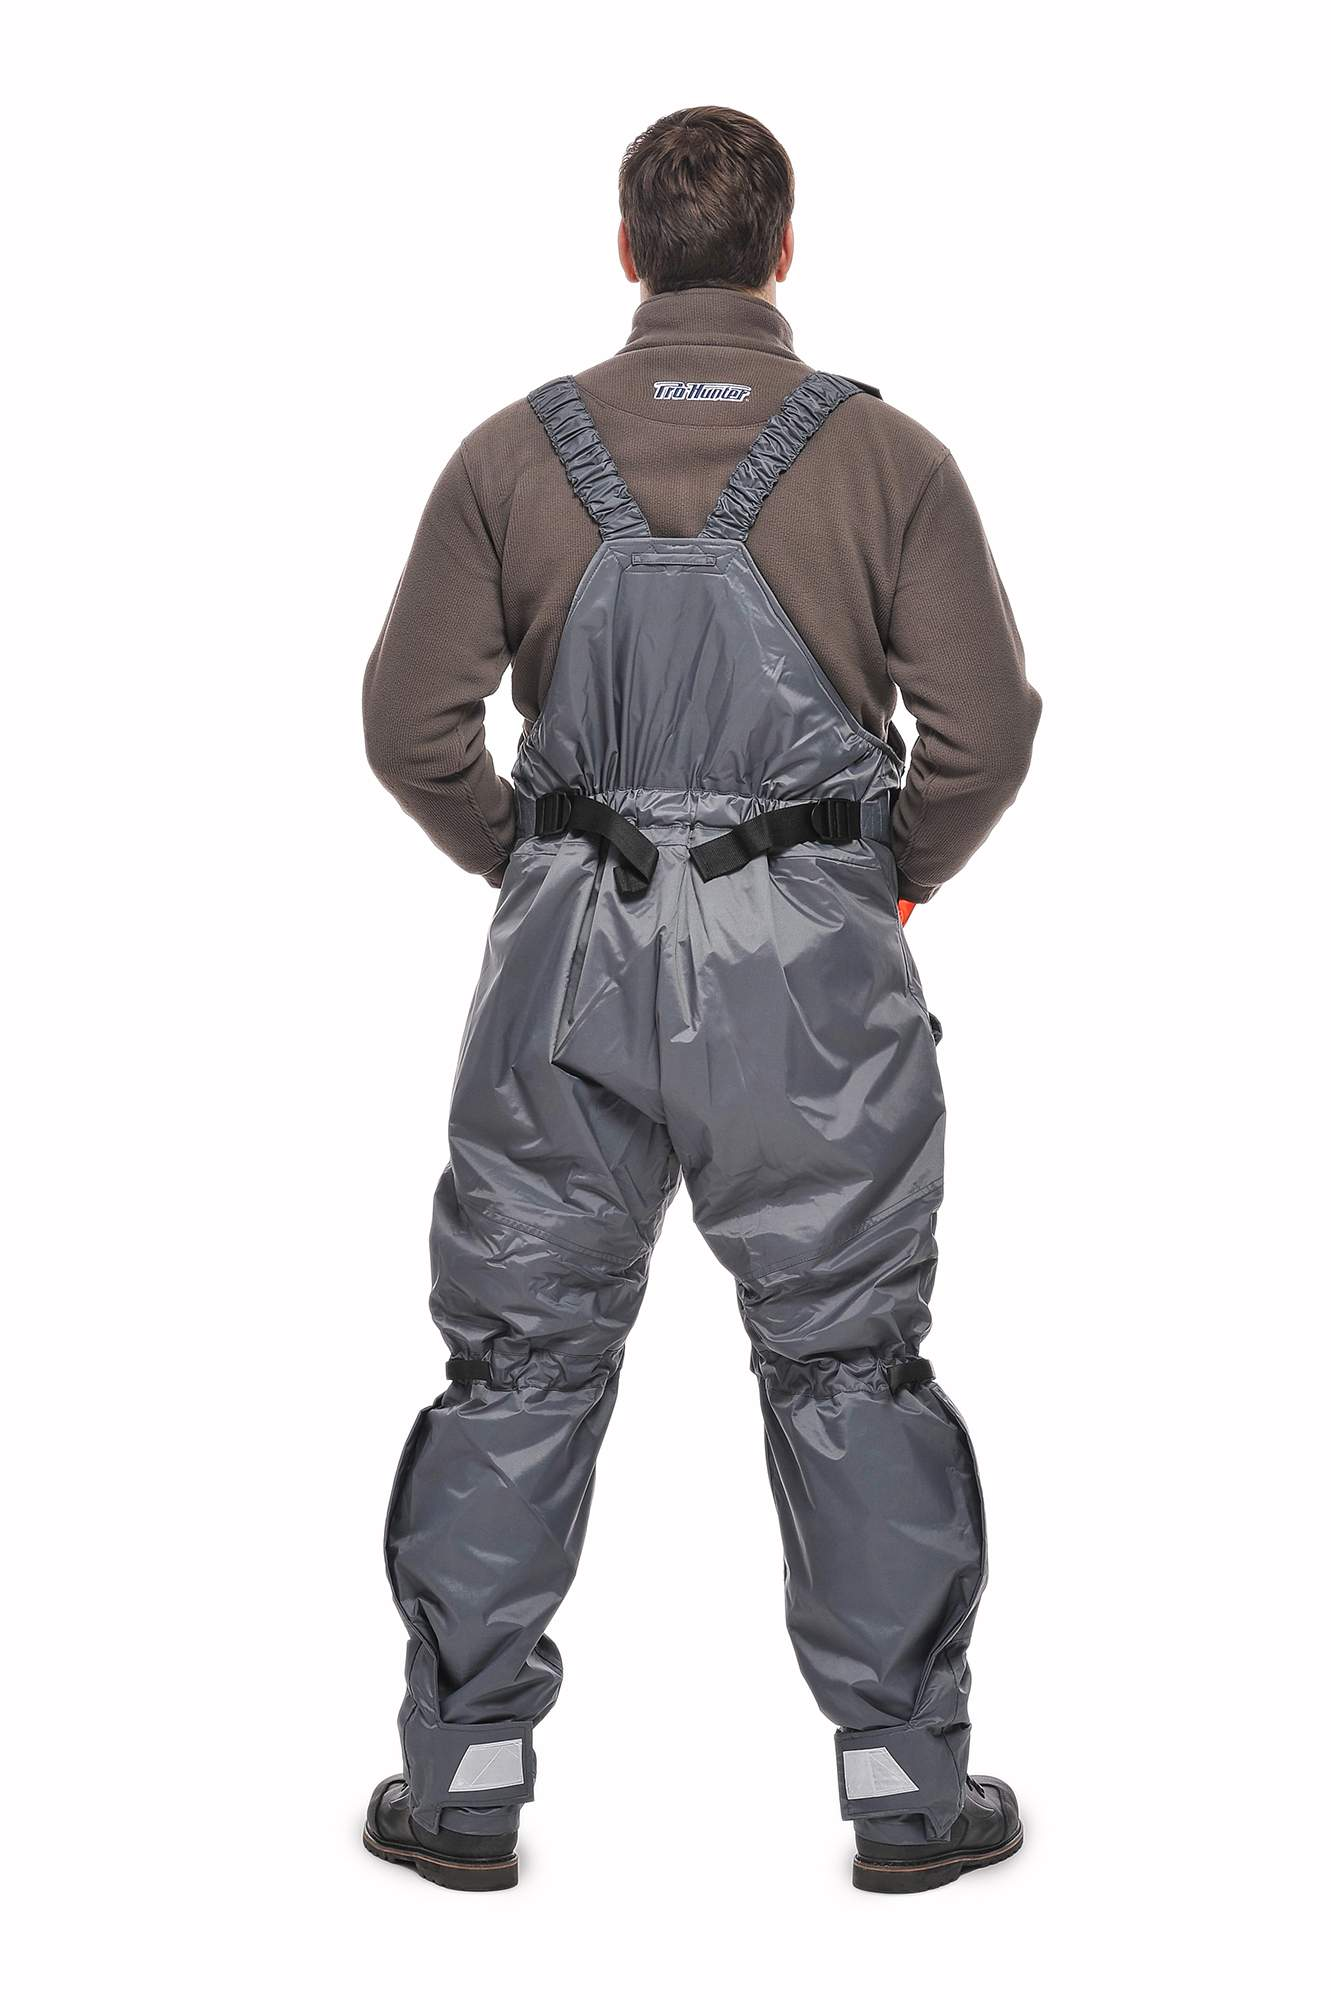 Костюм поплавок Monster Fish flotation suit от S до XXXL